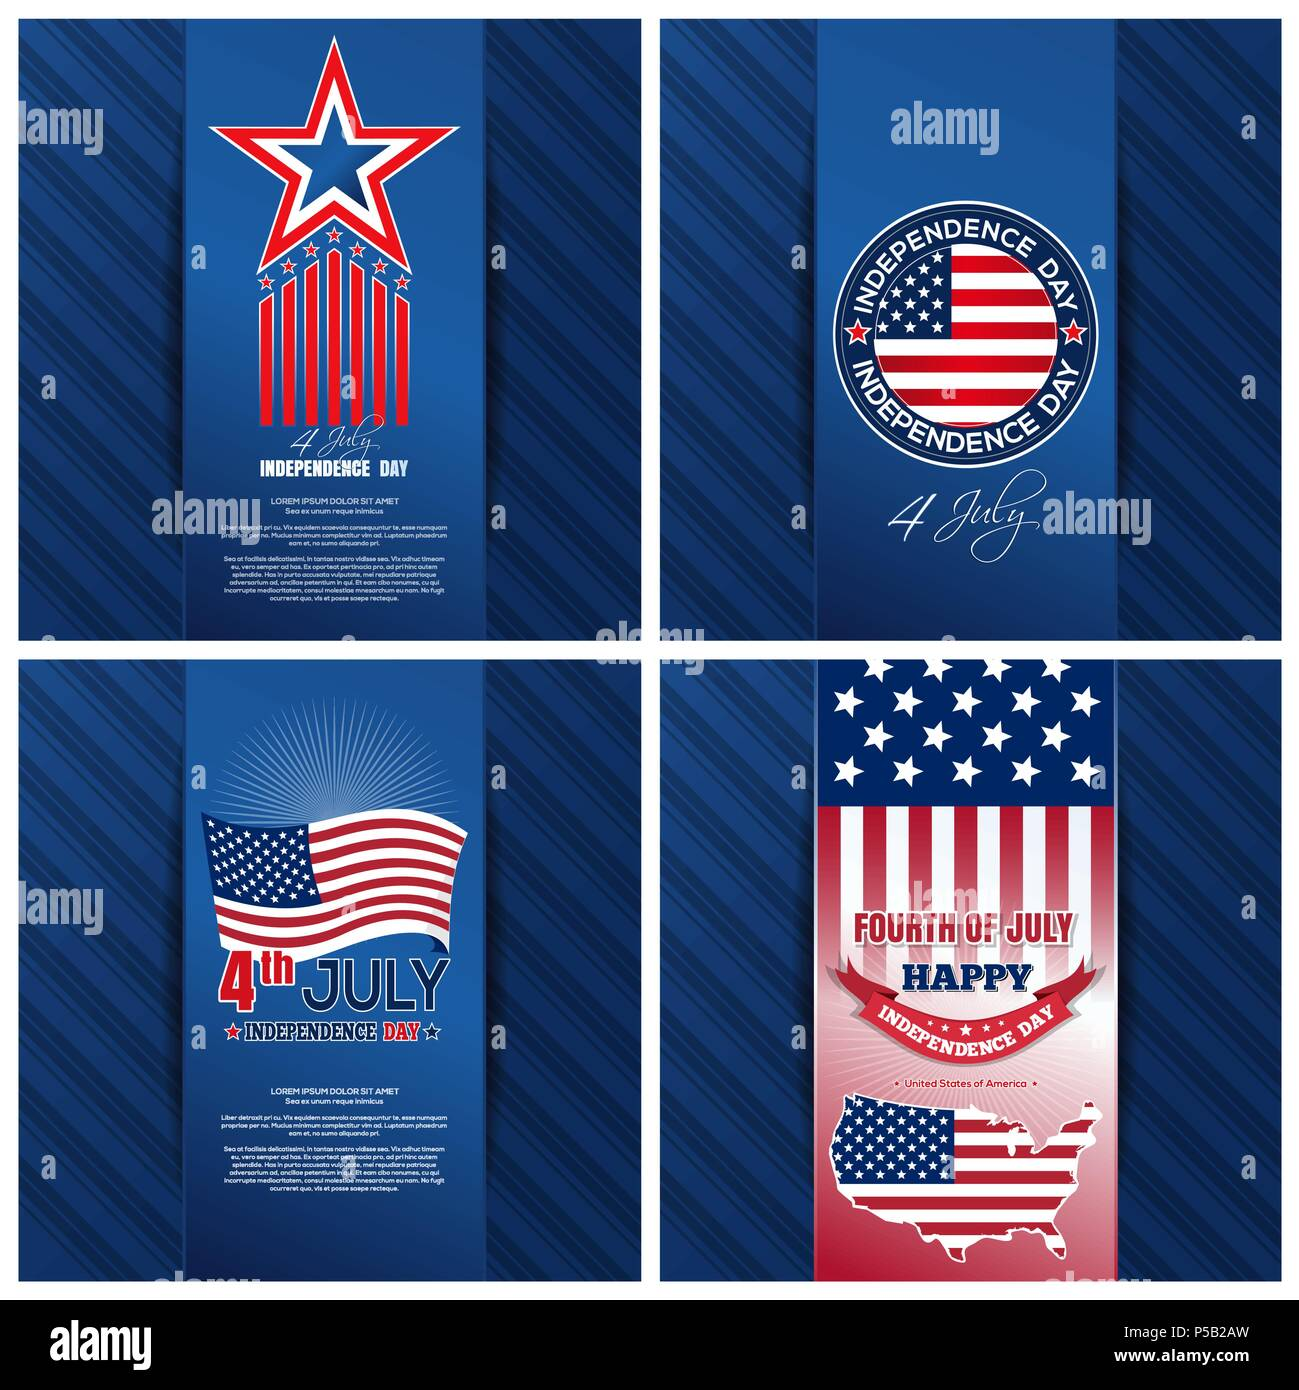 Greeting Cards Set For The United States Independence Day 4th Of